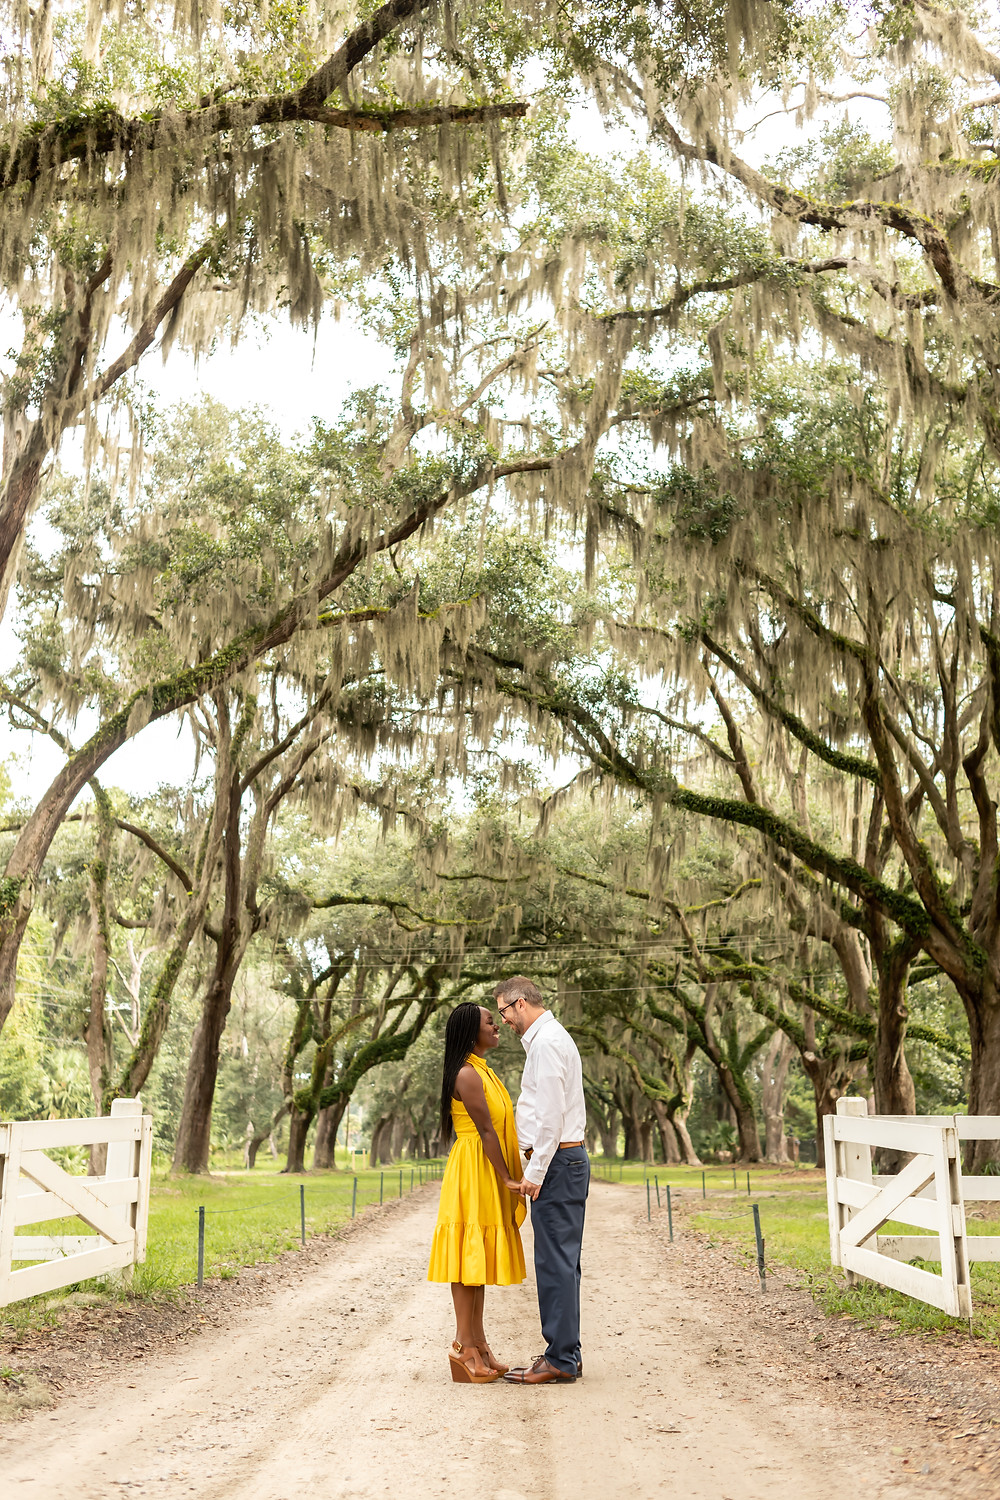 Christabel & Mike's Engagement Session at Wormsloe and Jones Street in Savannah, Georgia.